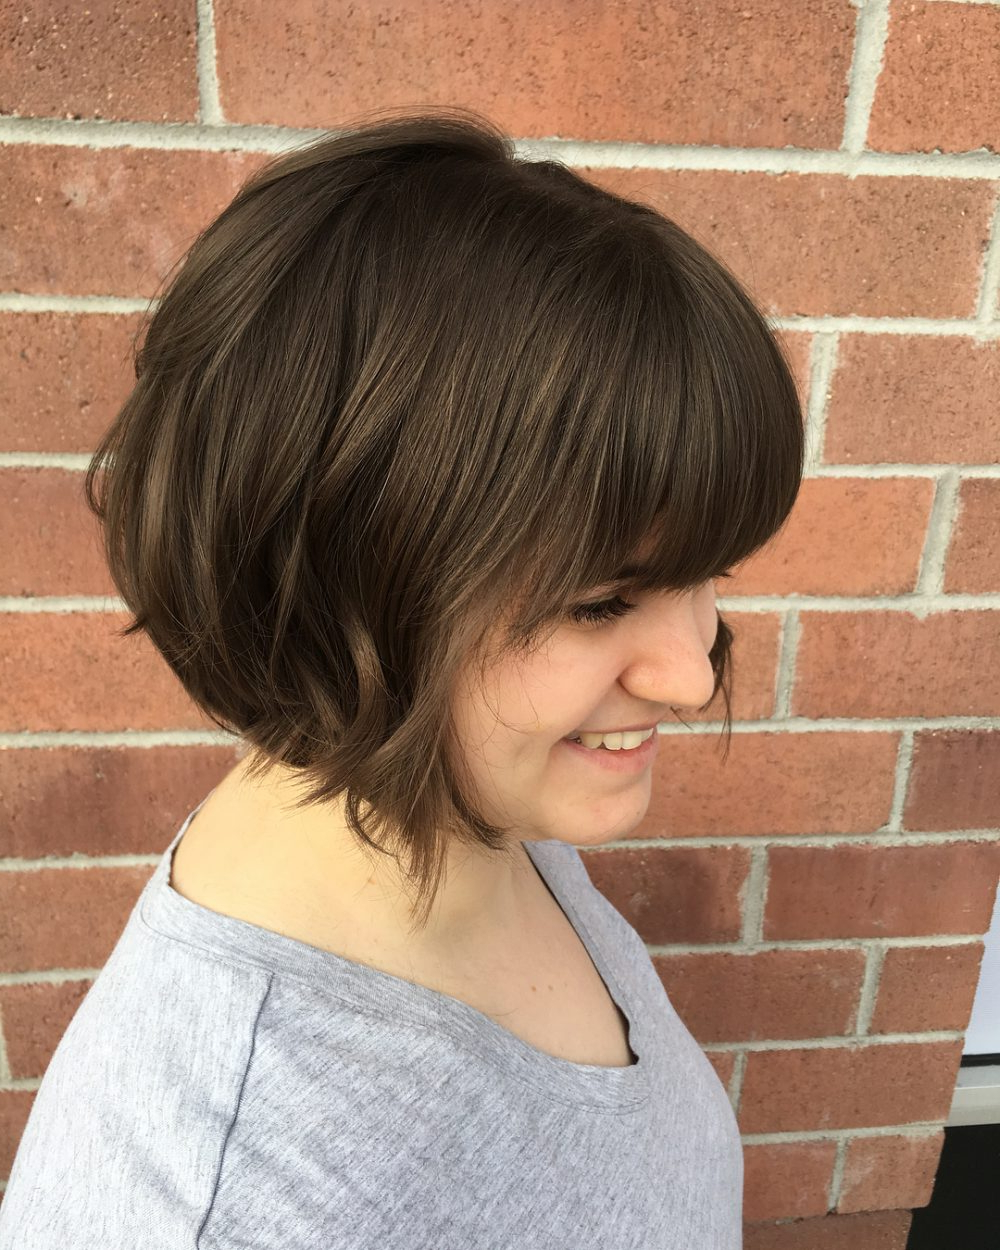 34 Greatest Short Haircuts And Hairstyles For Thick Hair For 2018 Intended For Pretty And Sleek Hairstyles For Thick Hair (View 5 of 20)